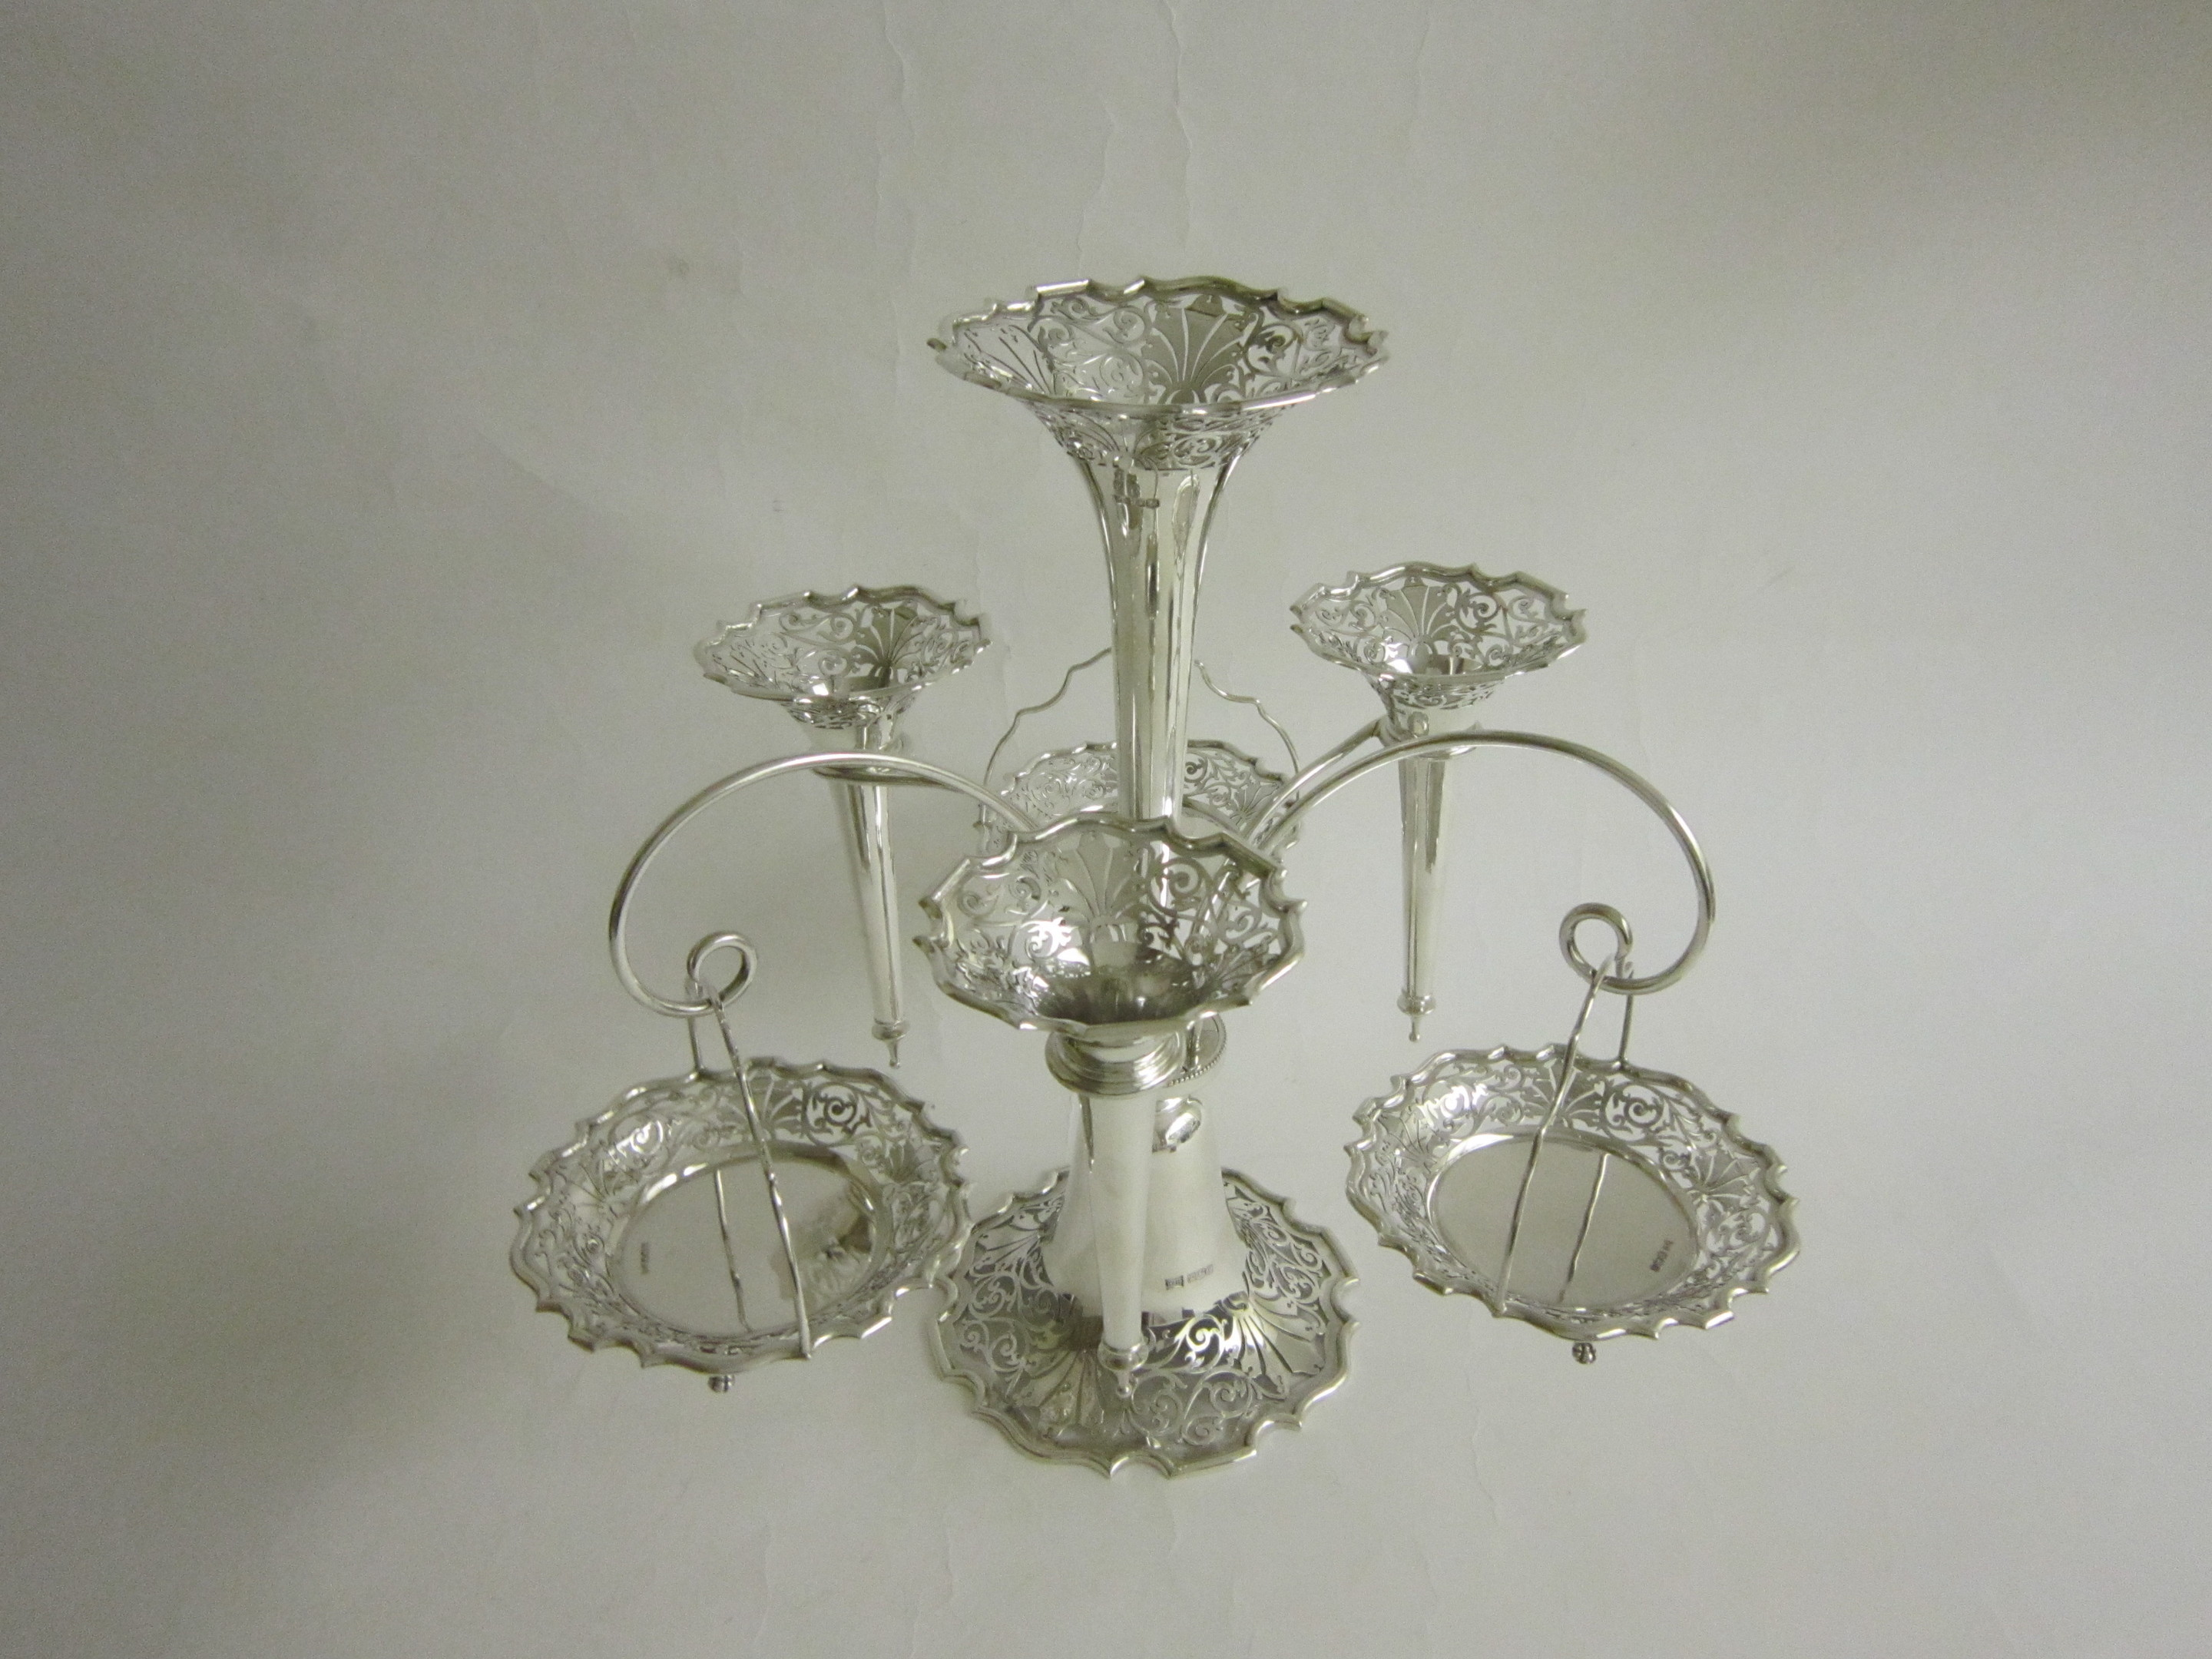 Enjoyable Epergne for Sale | Mesmerizing Epergne